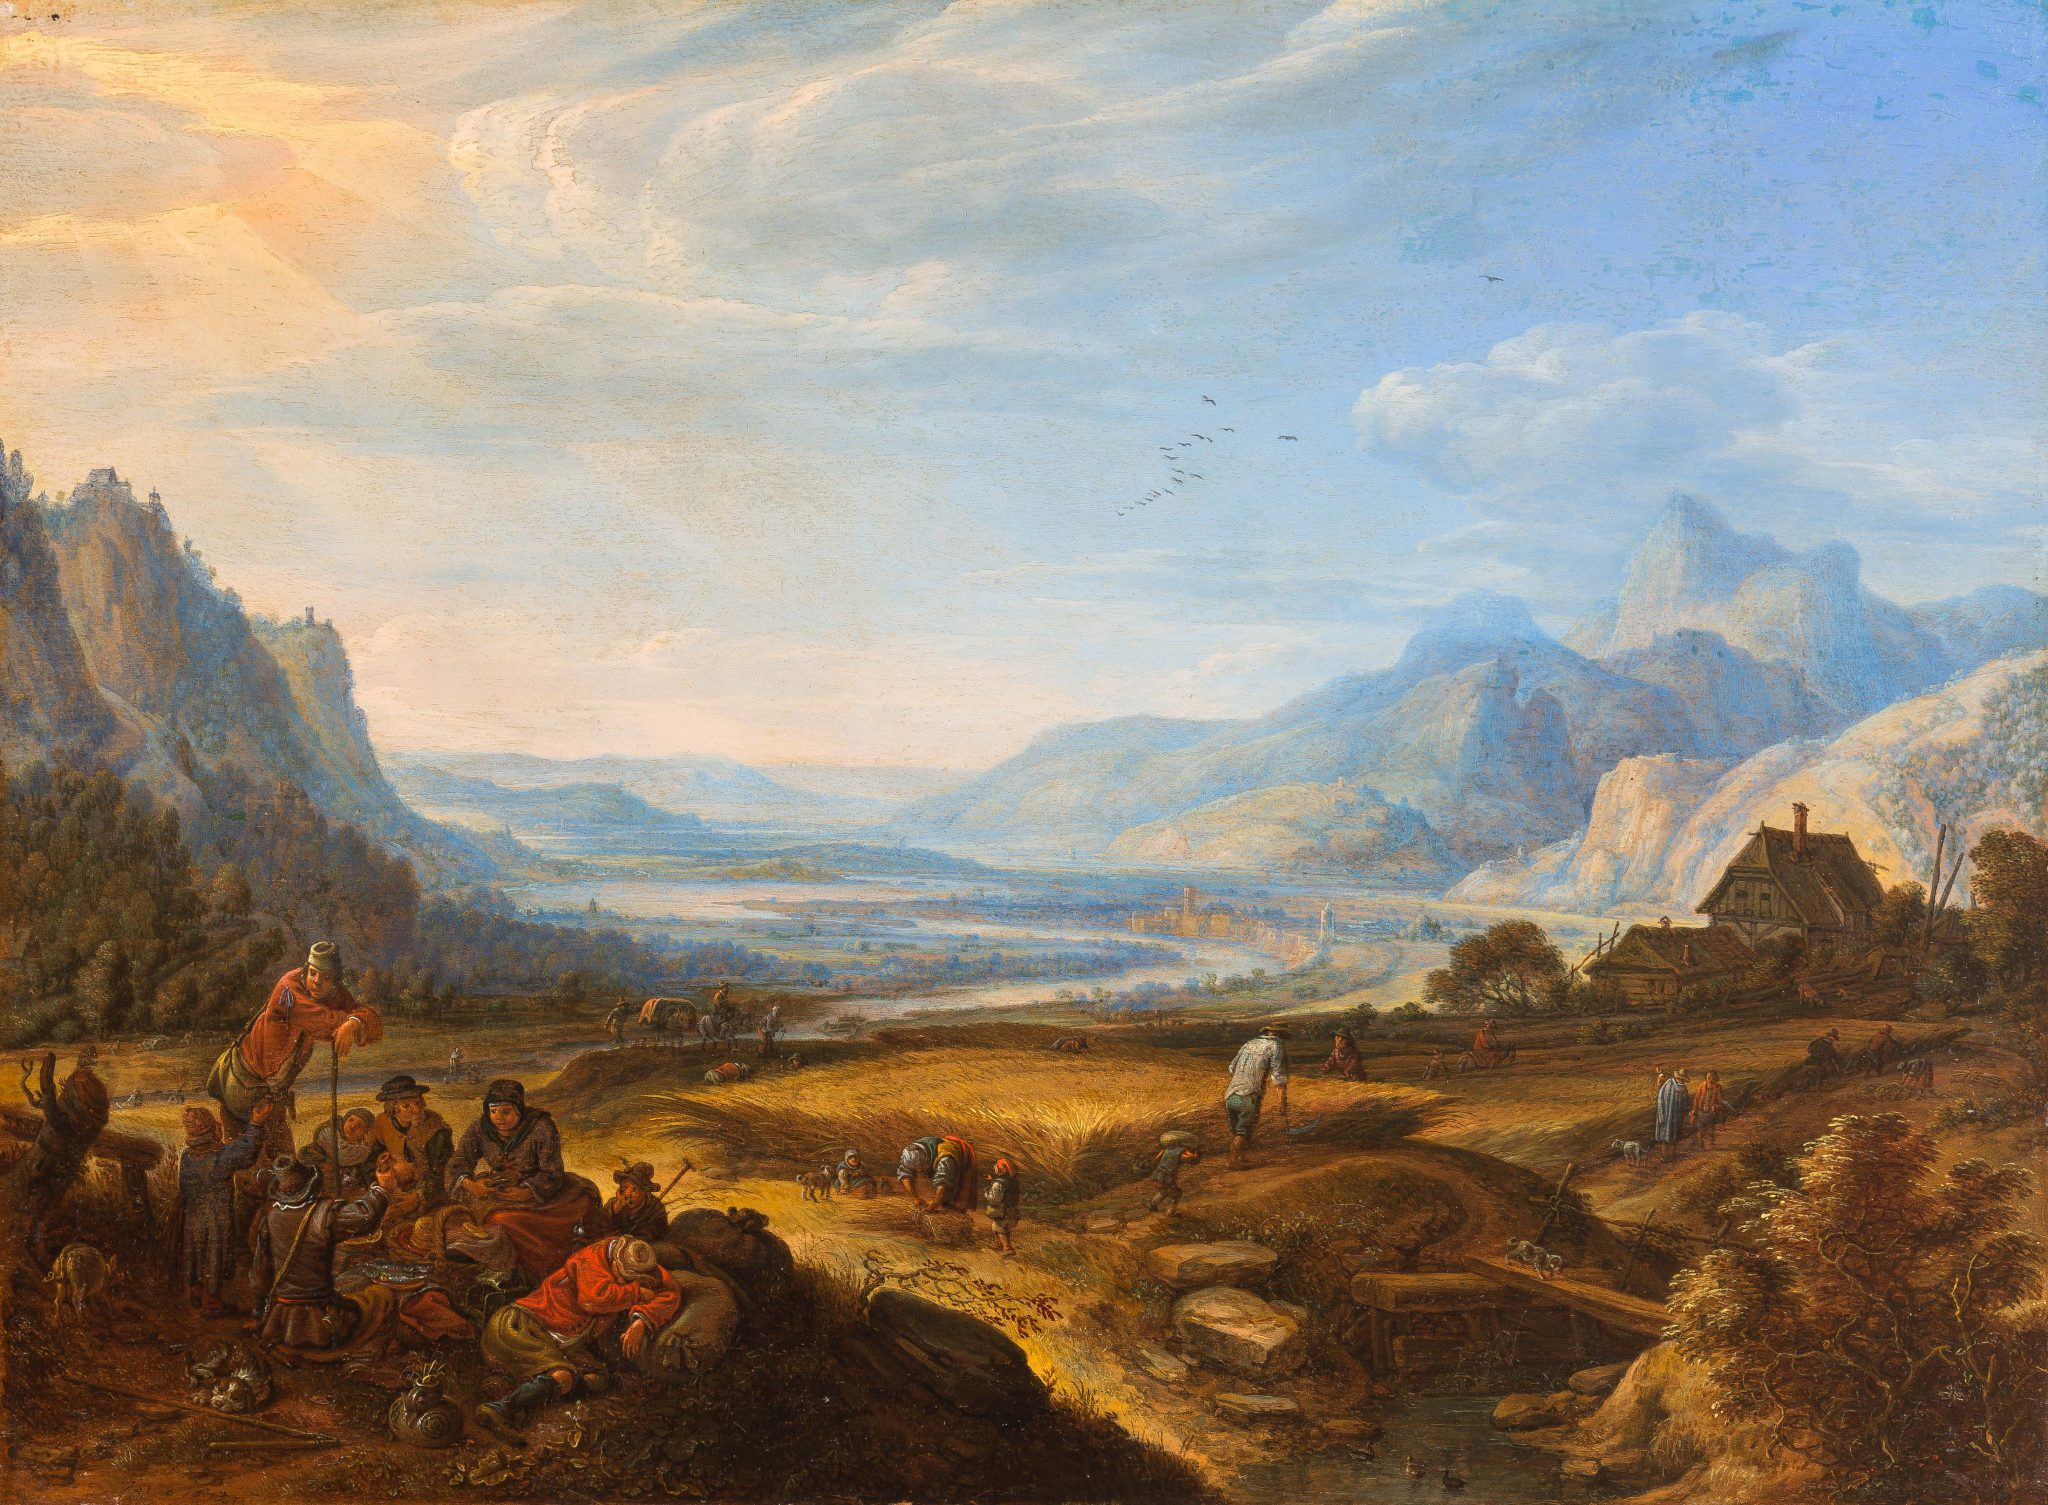 An extensive Mountainous Landscape